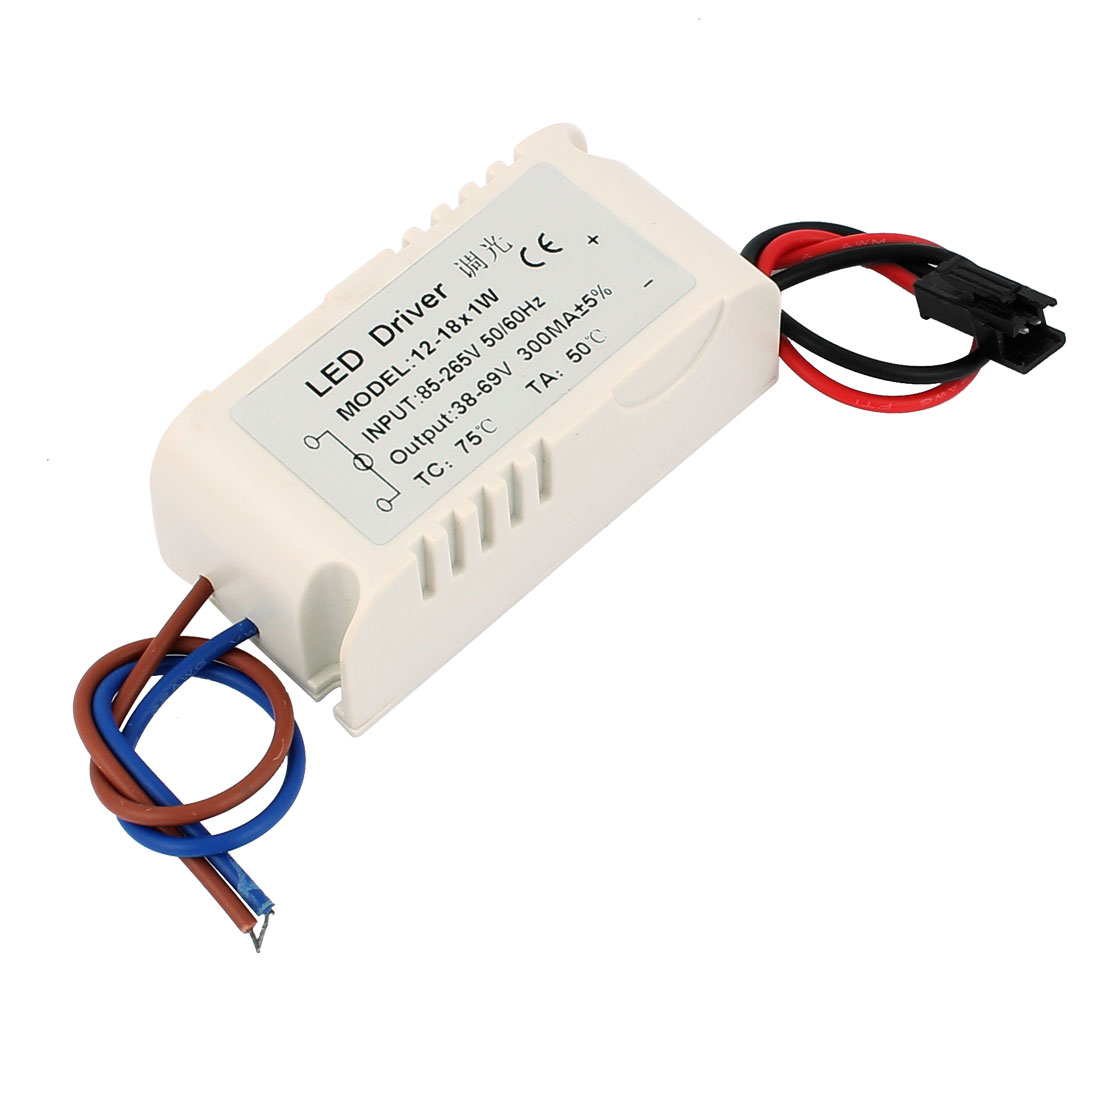 AC85-265V to DC38-69V 300mA (12-18)x1W LED Dimmer Driver Power Supply Converter Adapter